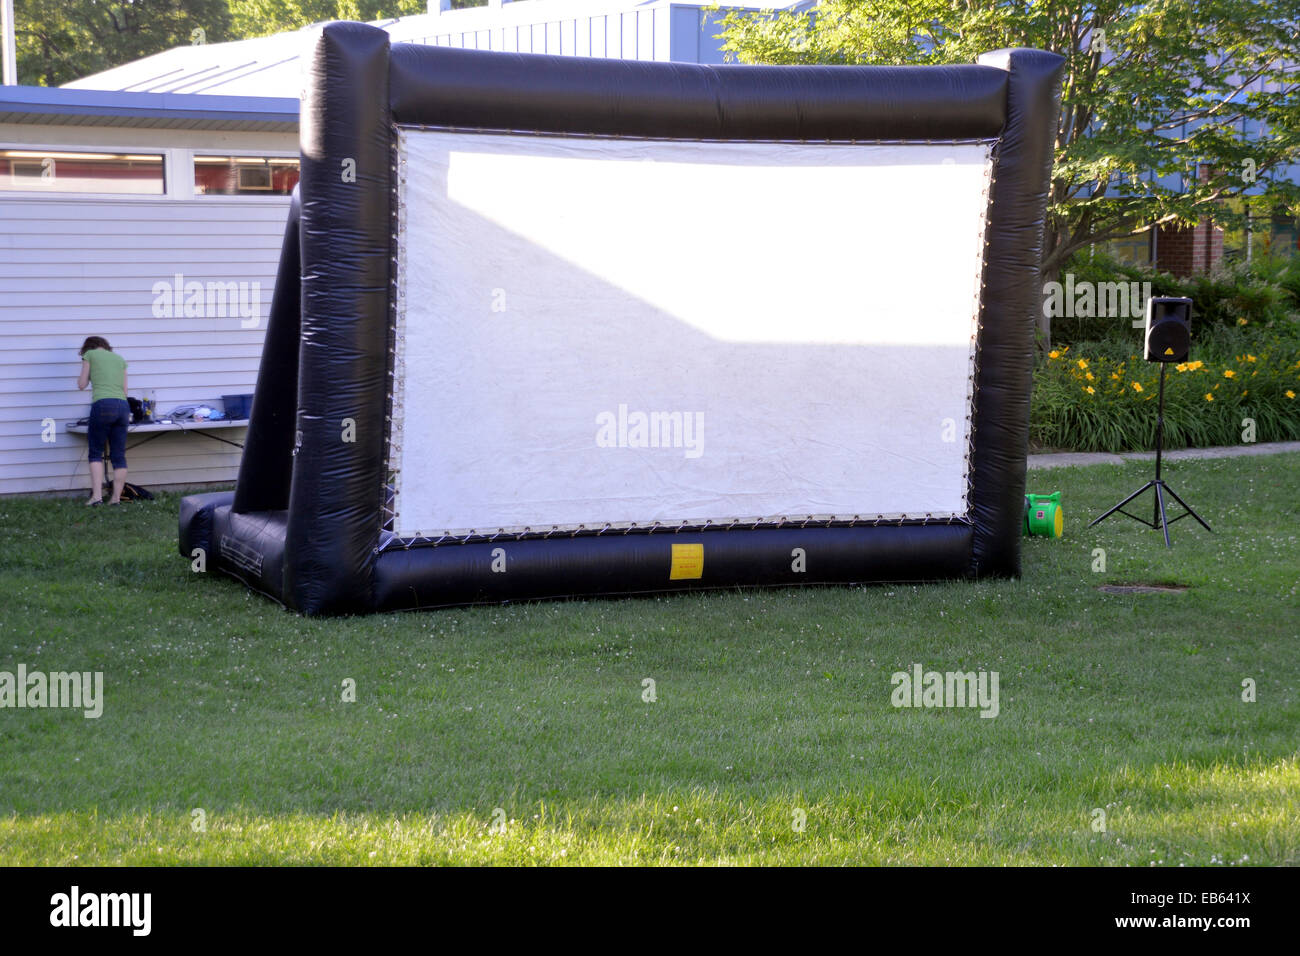 Officials setting up for an outside movie in Greenbelt, Maryland - Stock Image